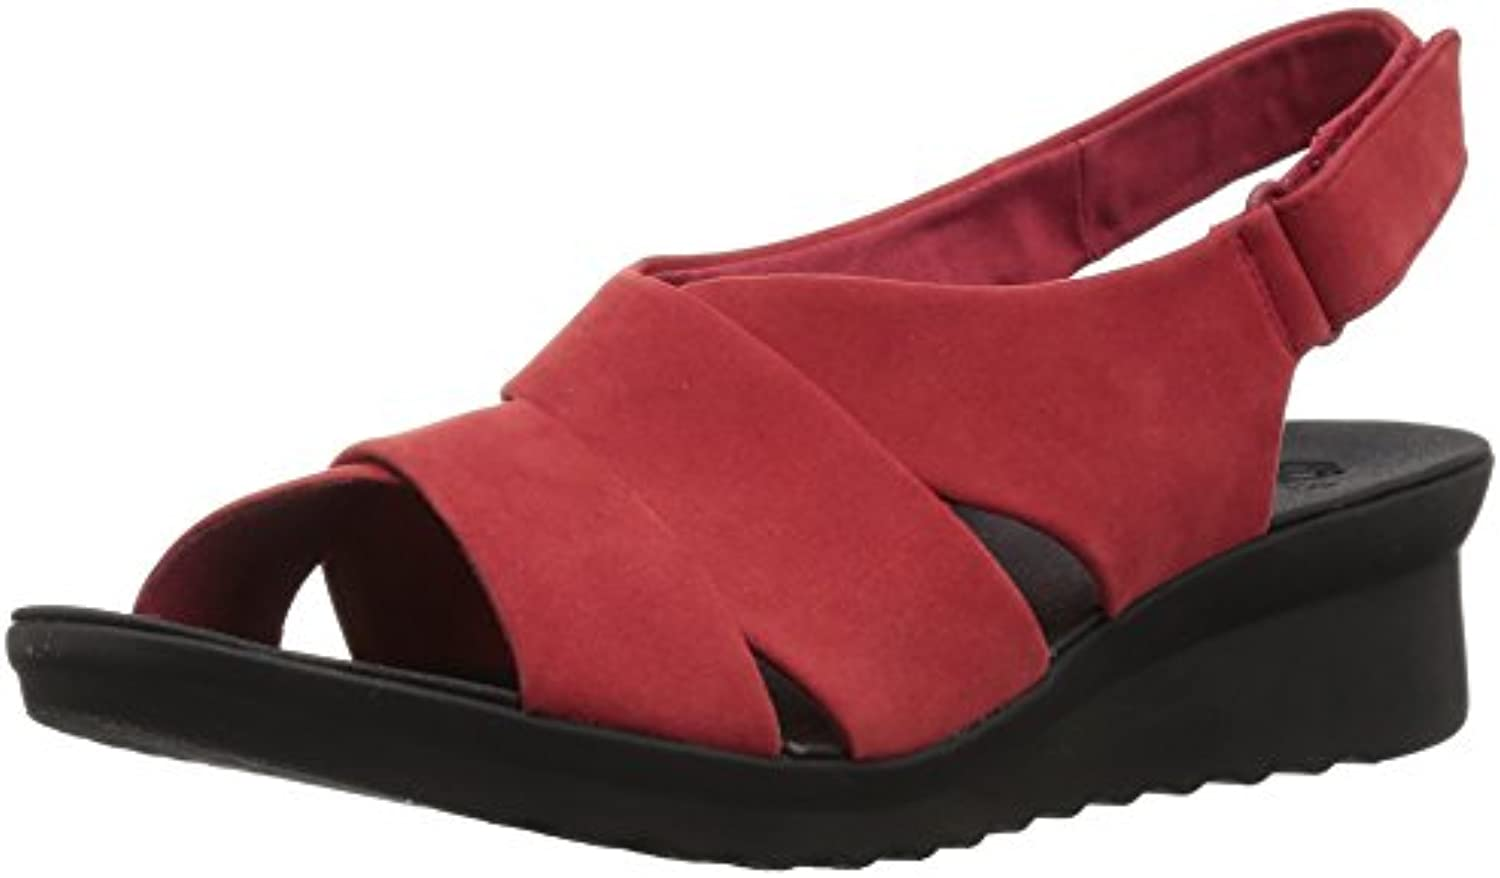 Clarks Wouomo Caddell Petal Platform, rosso rosso rosso Synthetic Nubuck, 6 M US | Dall'ultimo modello  bde59f